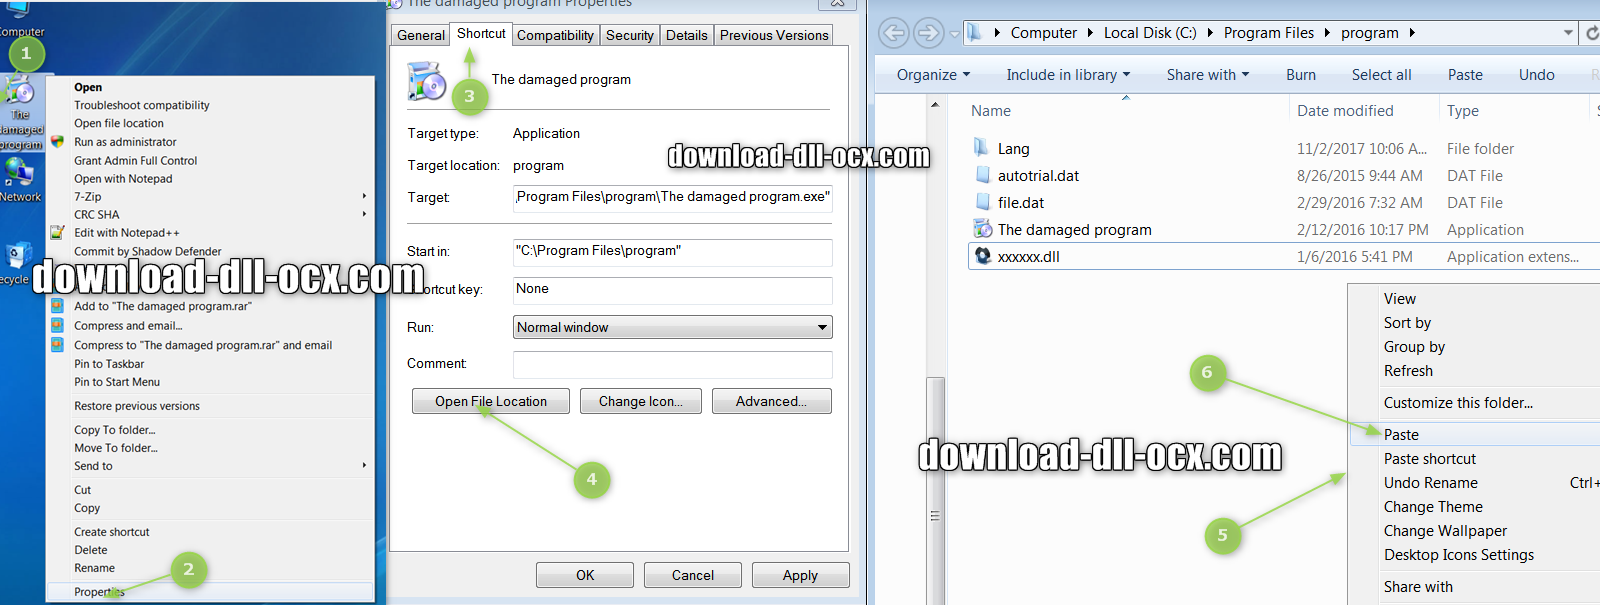 how to install Progupd.dll file? for fix missing